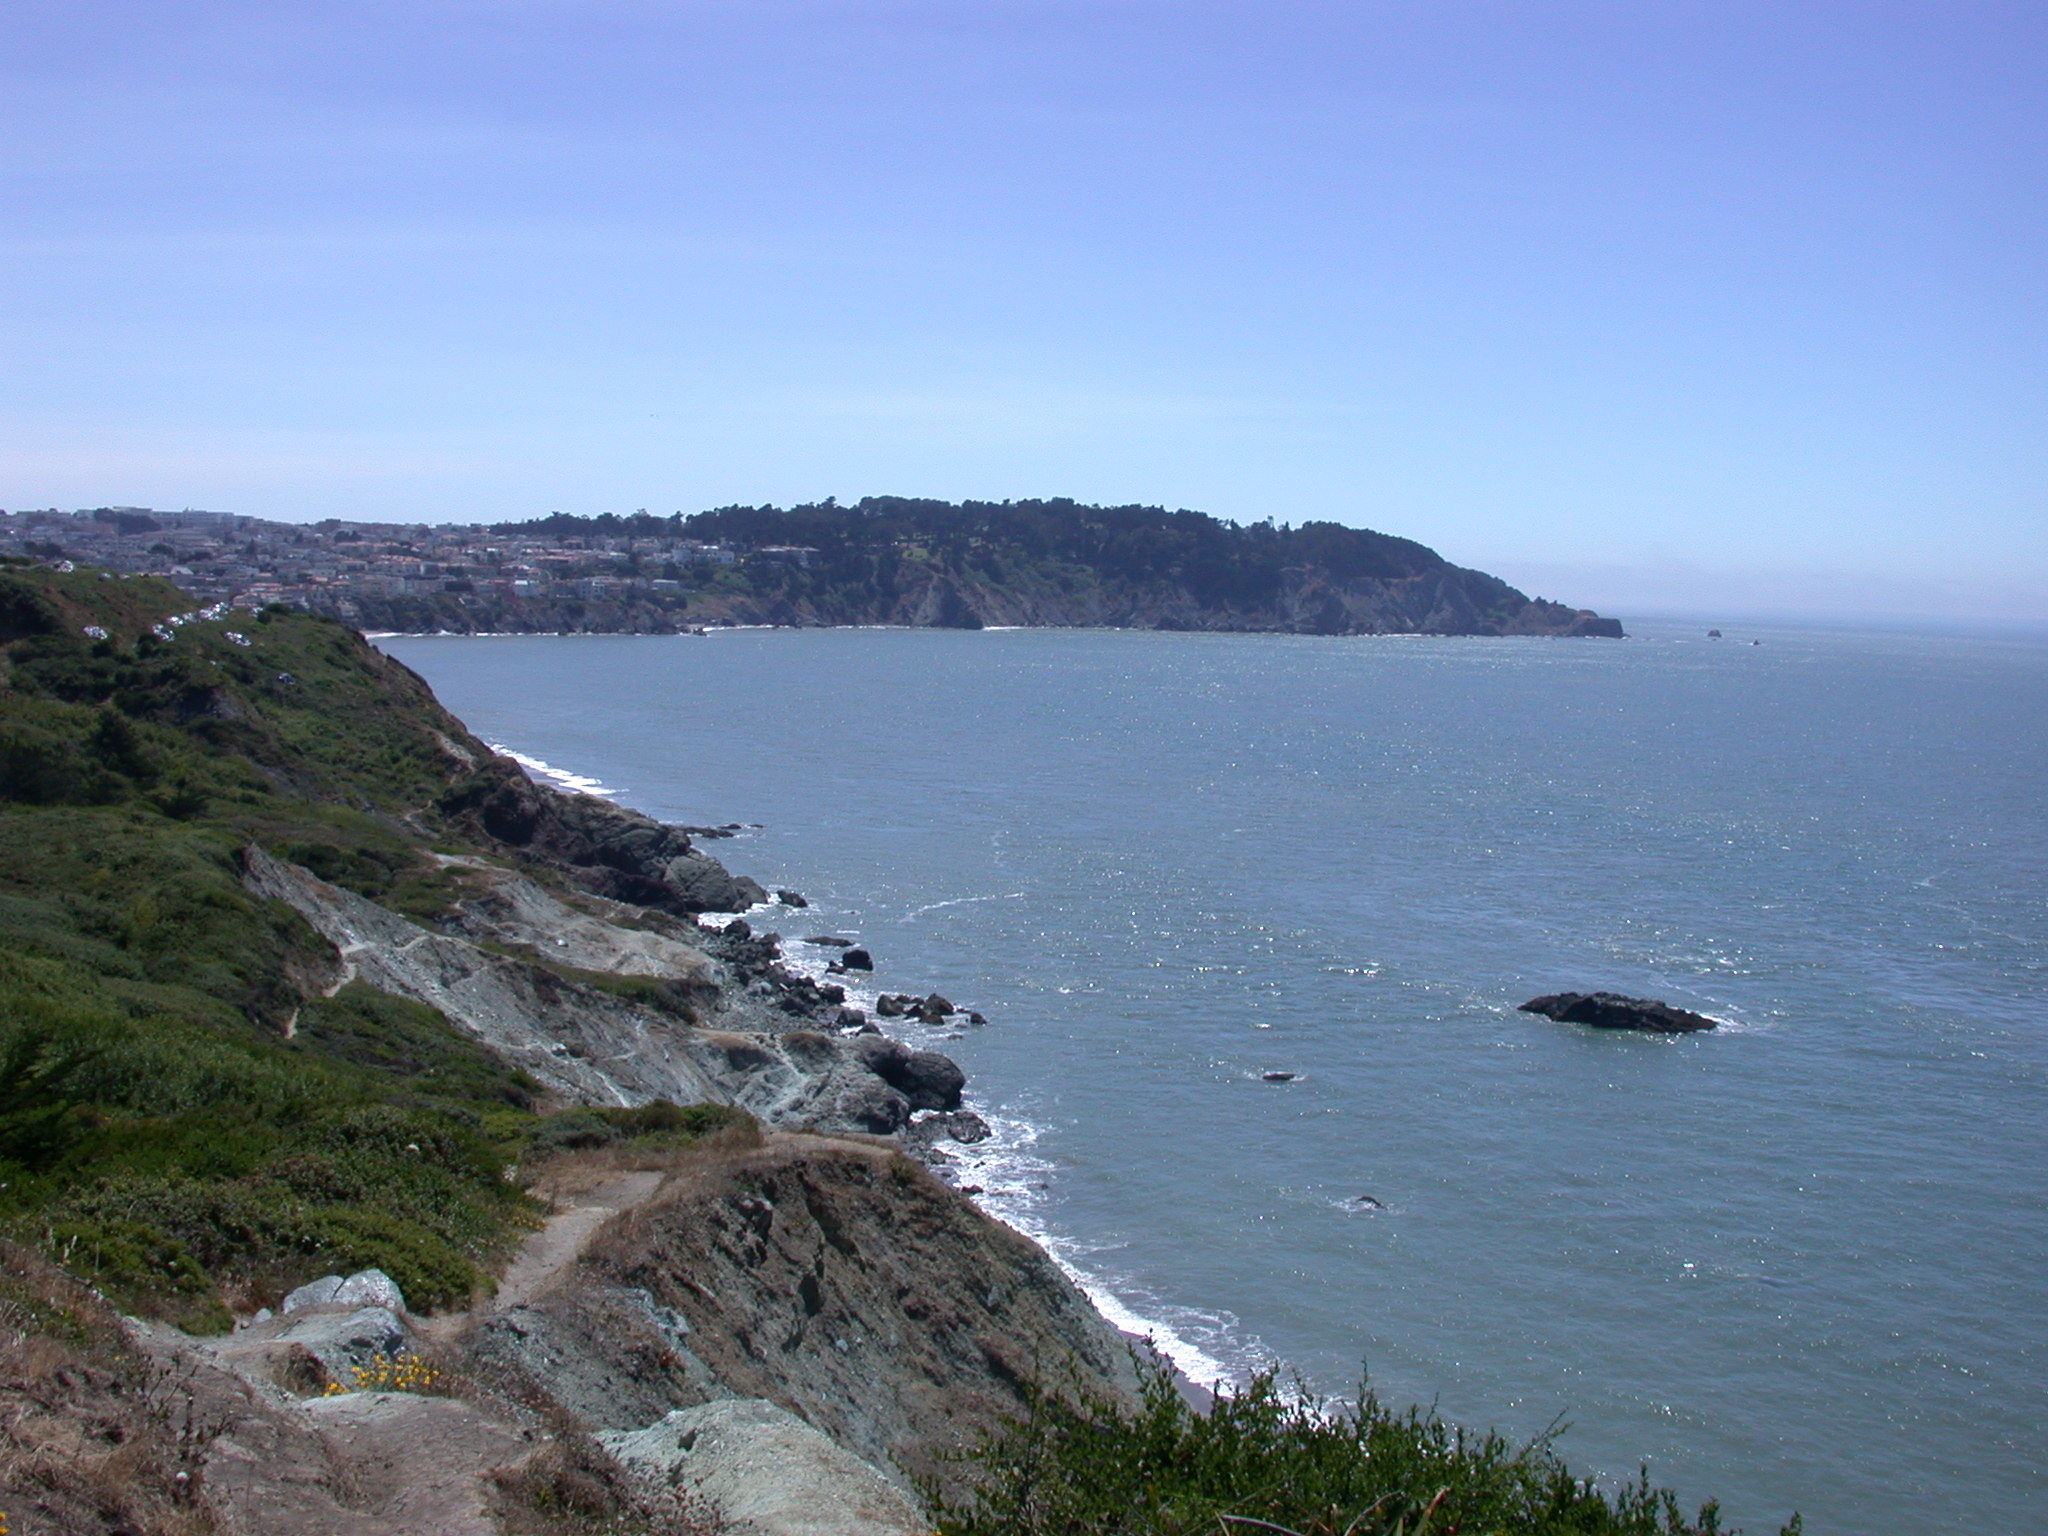 Ocean Coastline South of San Francisco Bay